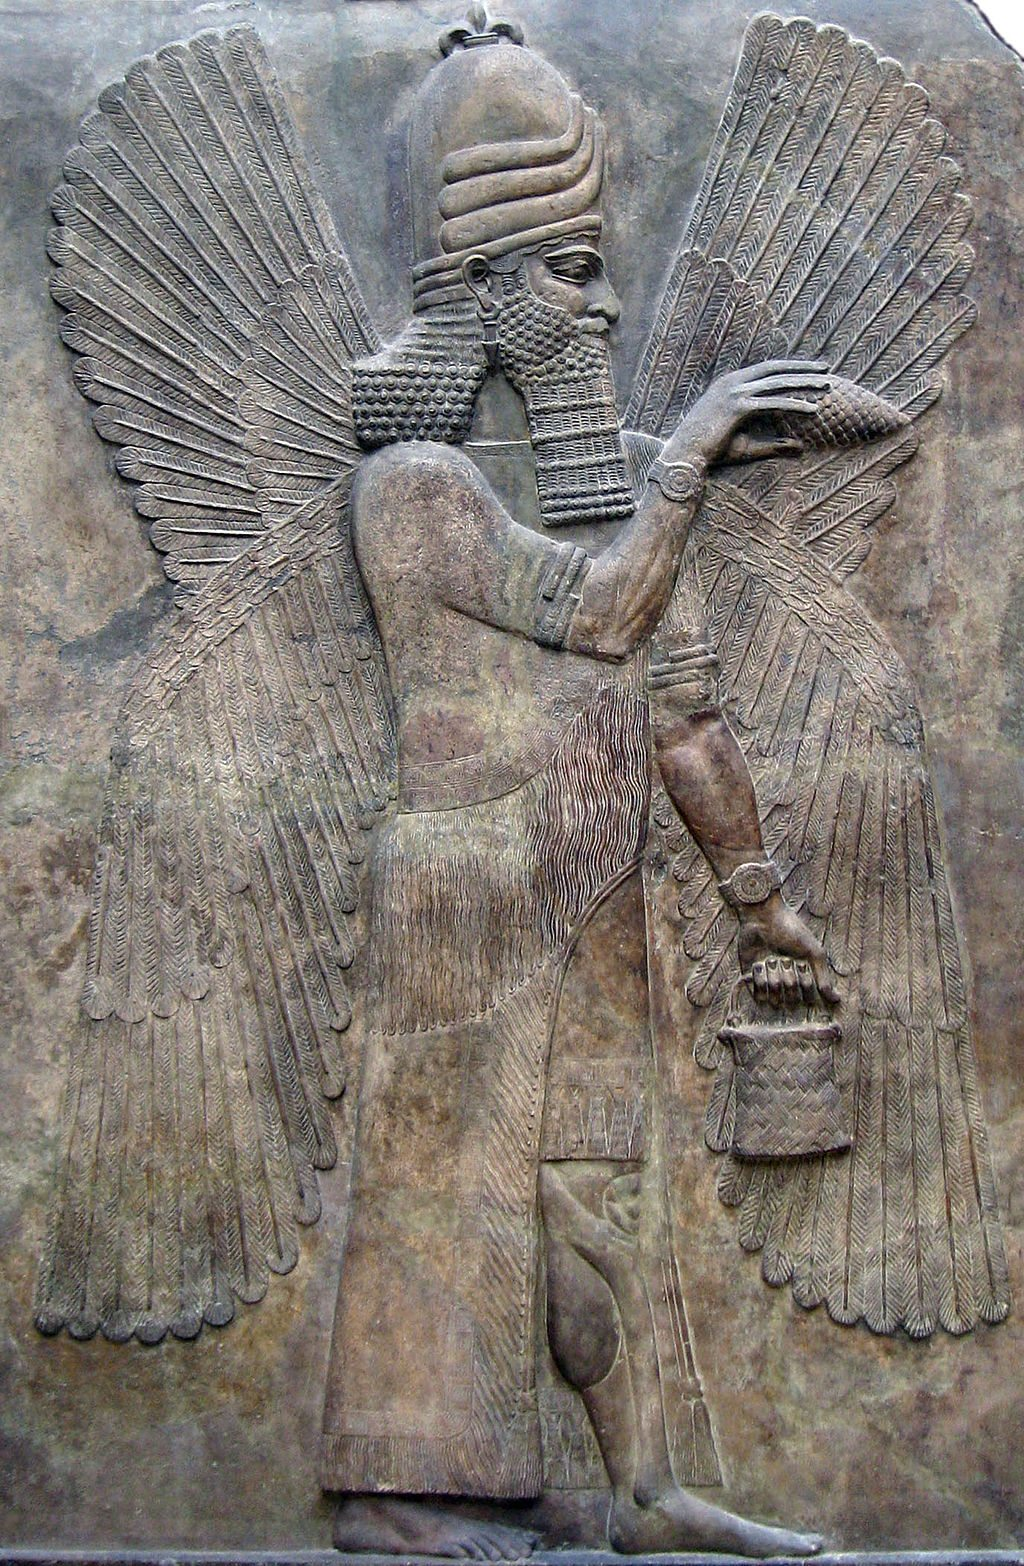 Marduk, high god of the Babylonians